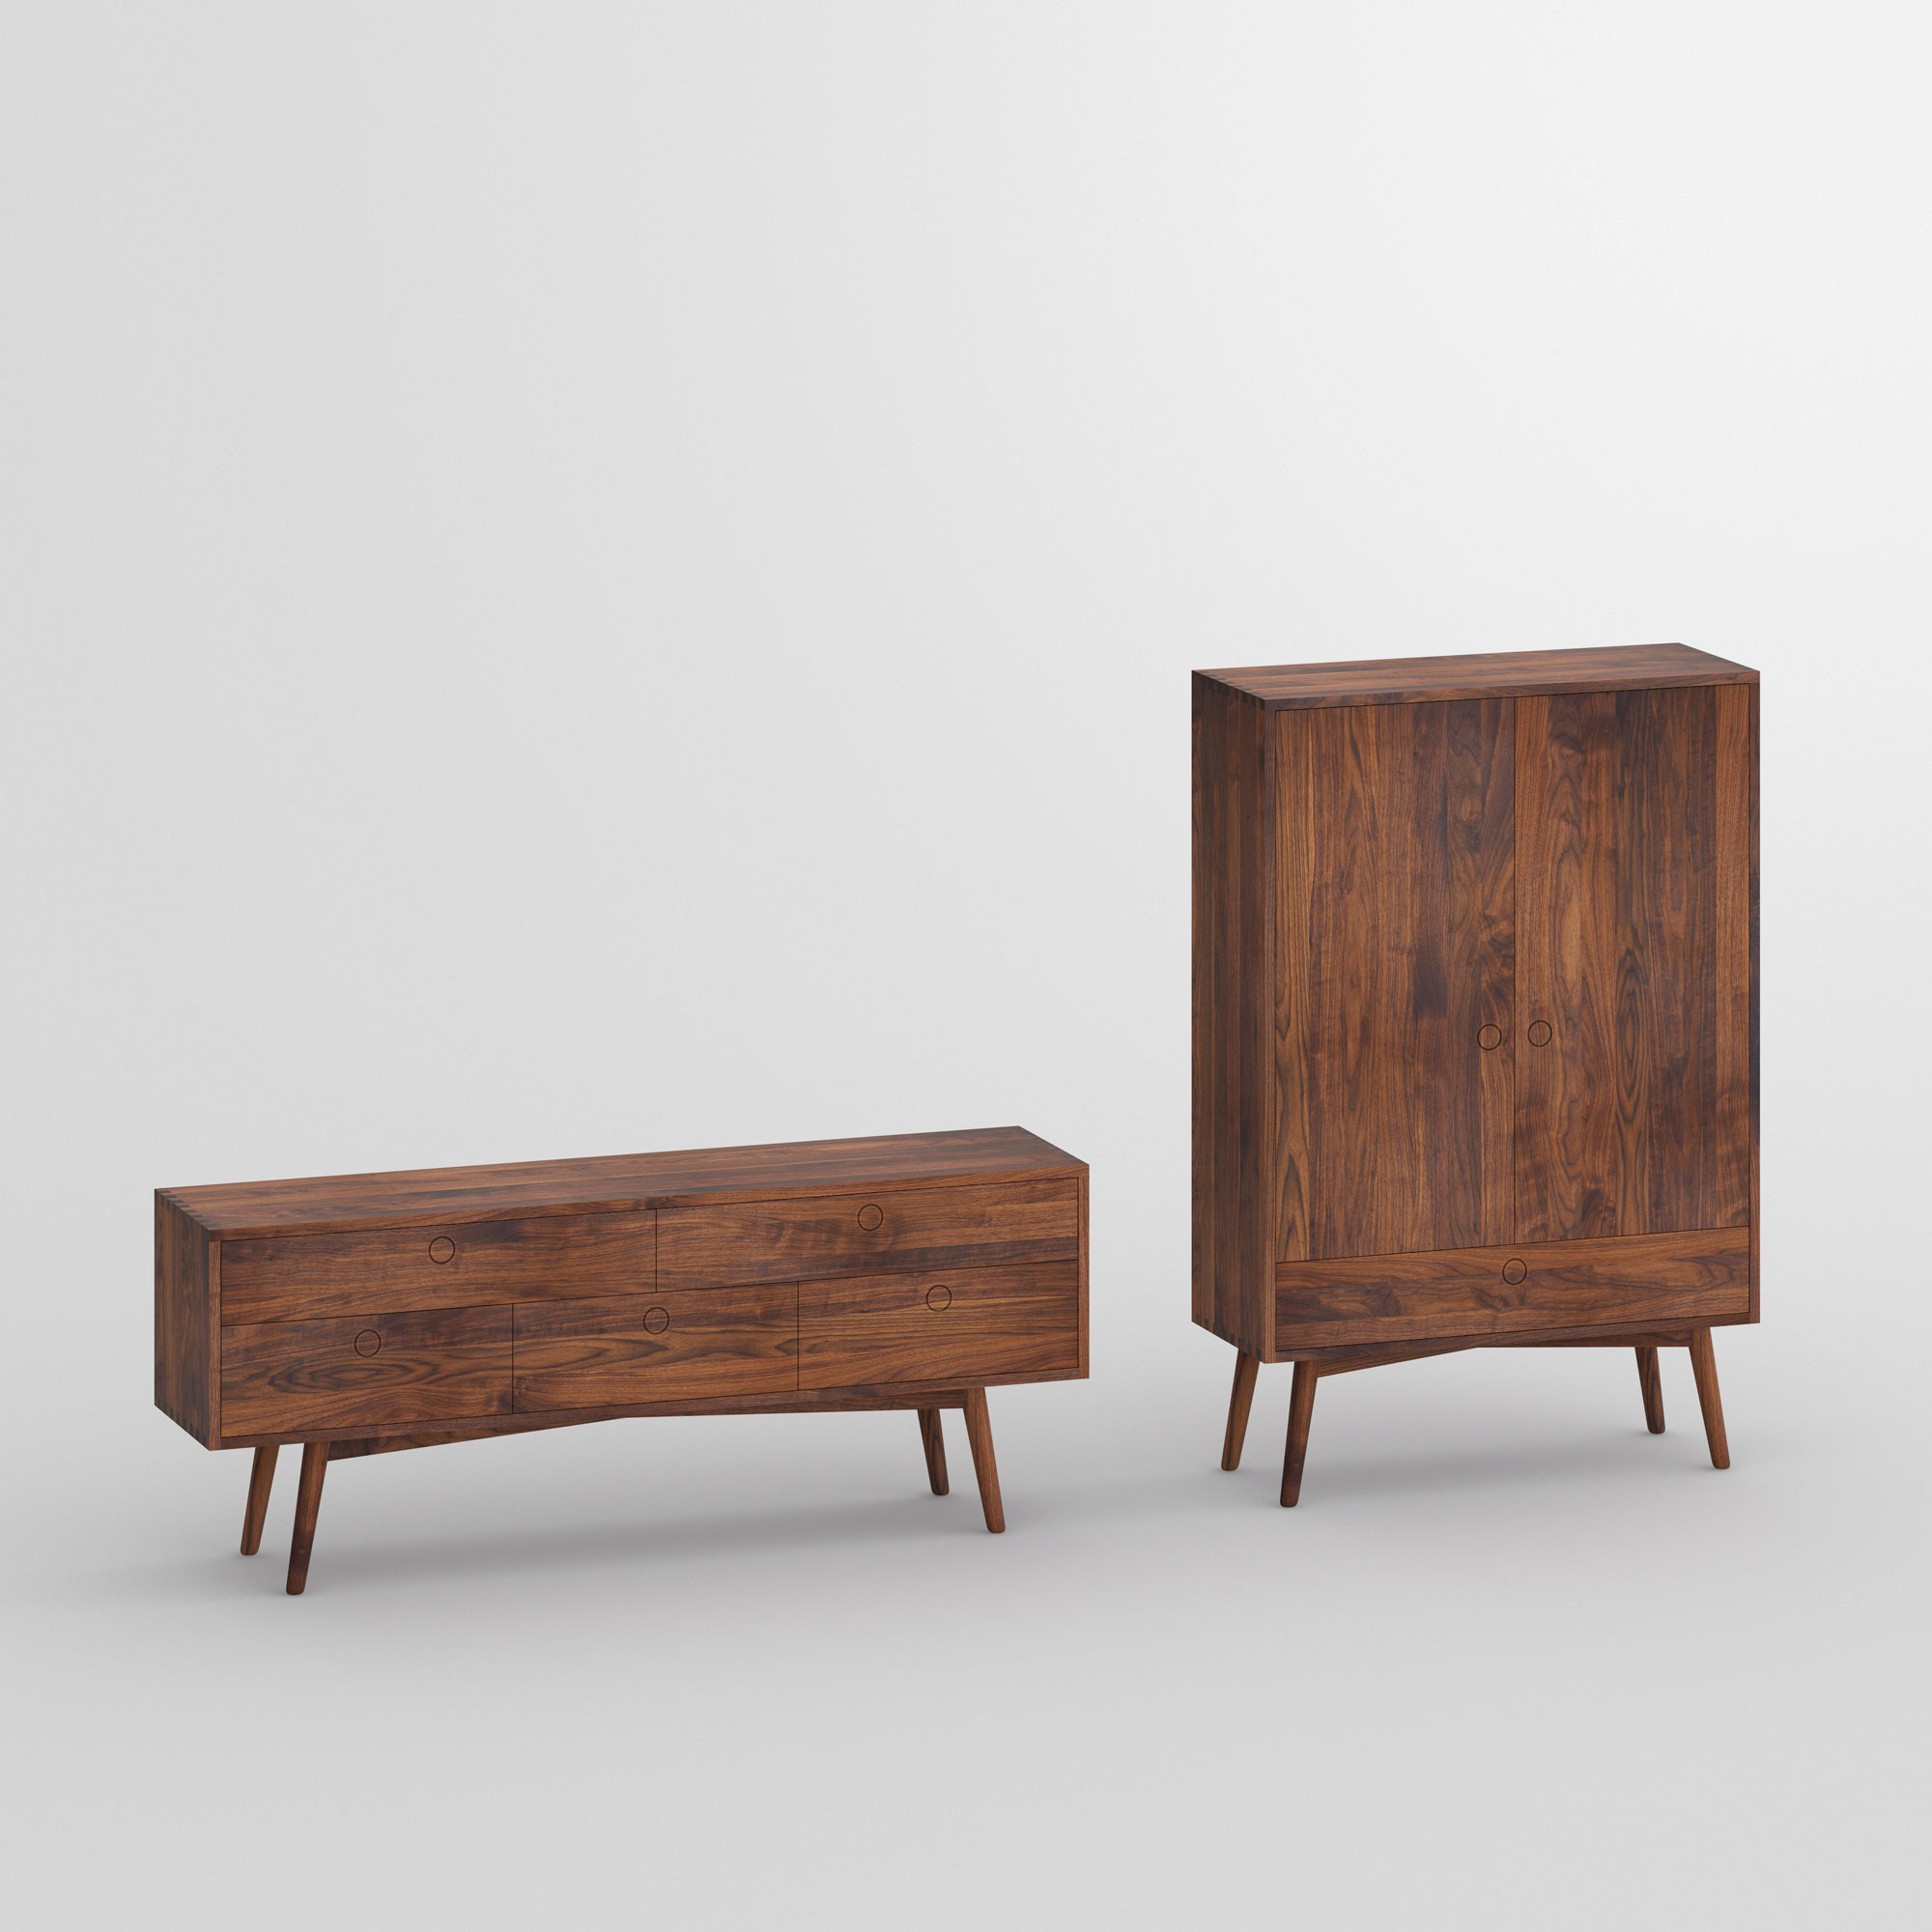 Designer Wood Cupboard Sideboard AMBIO vitamin-design custom made in solid wood by vitamin design